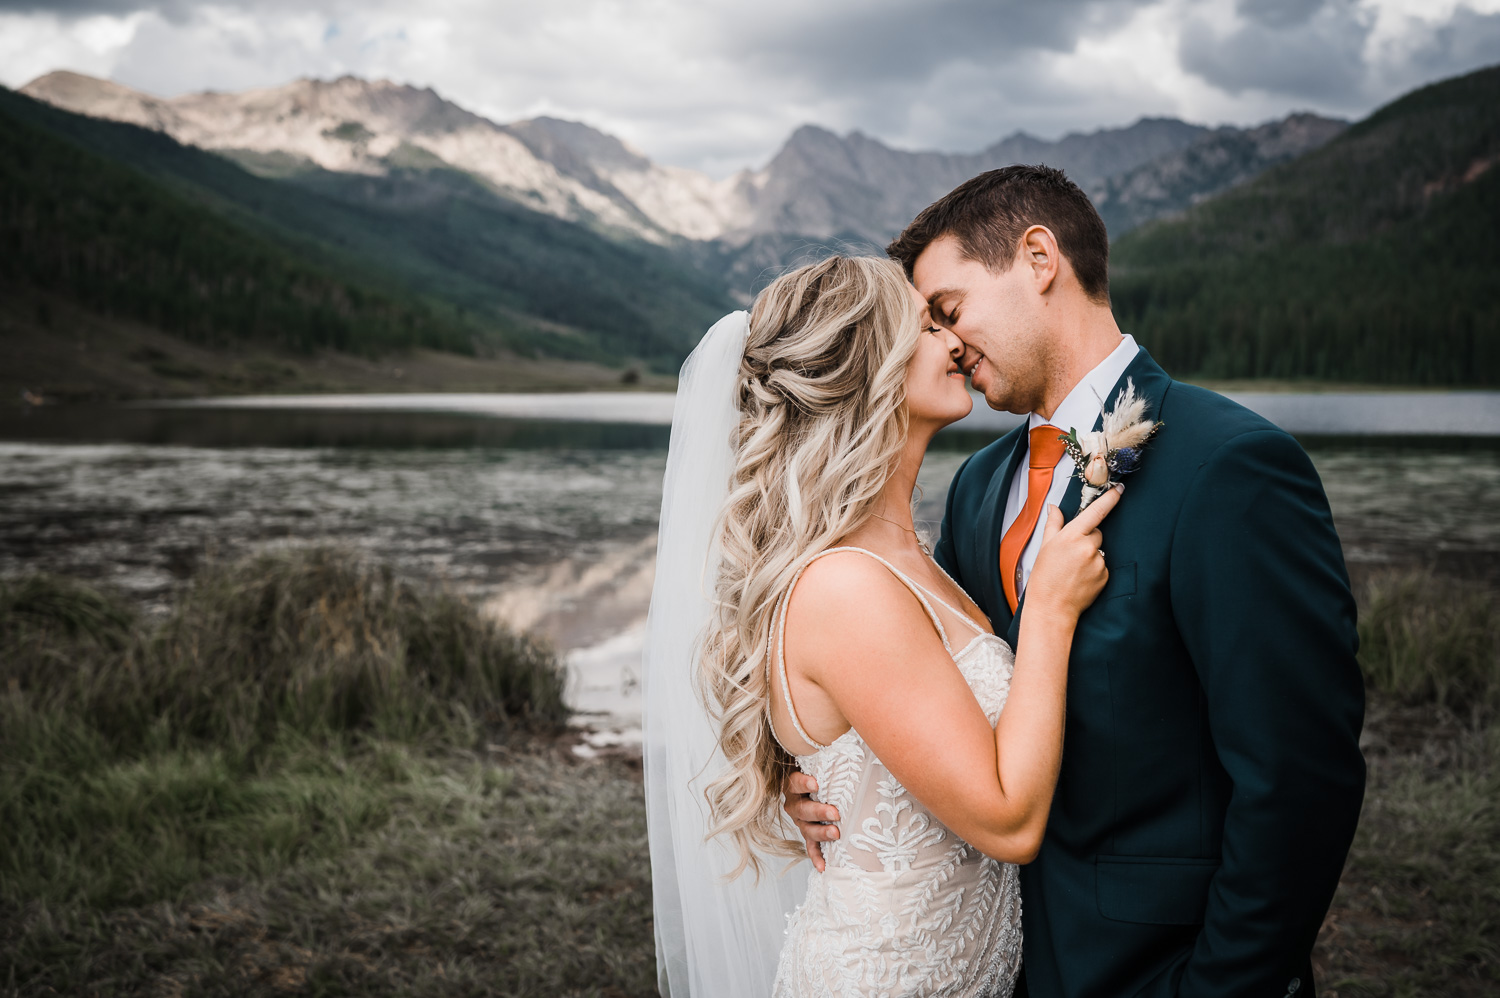 Bride pulls Groom in for kiss in front of Piney Lake with Mountains behind them